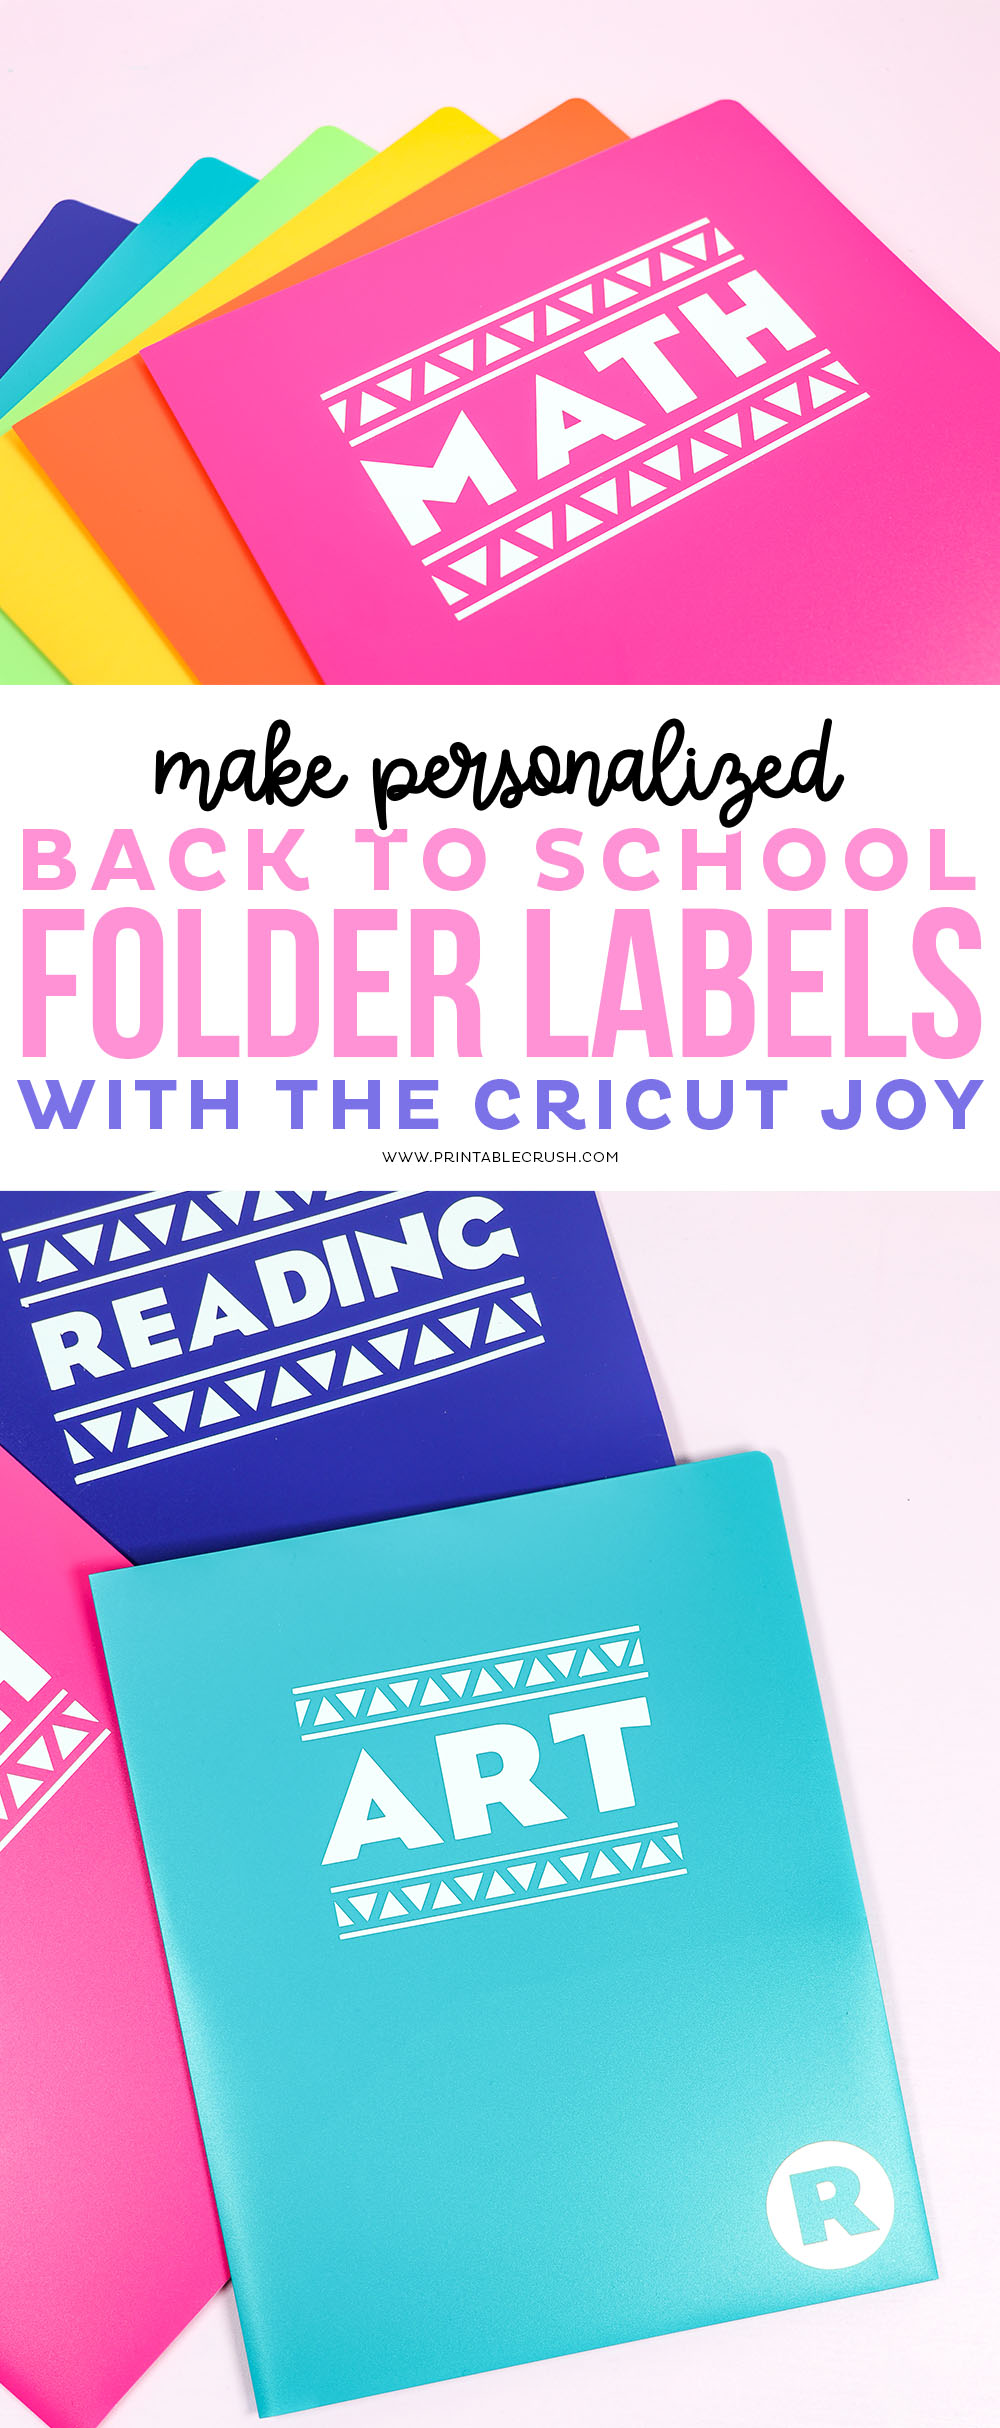 Back to School Folder Labels - Printable Crush